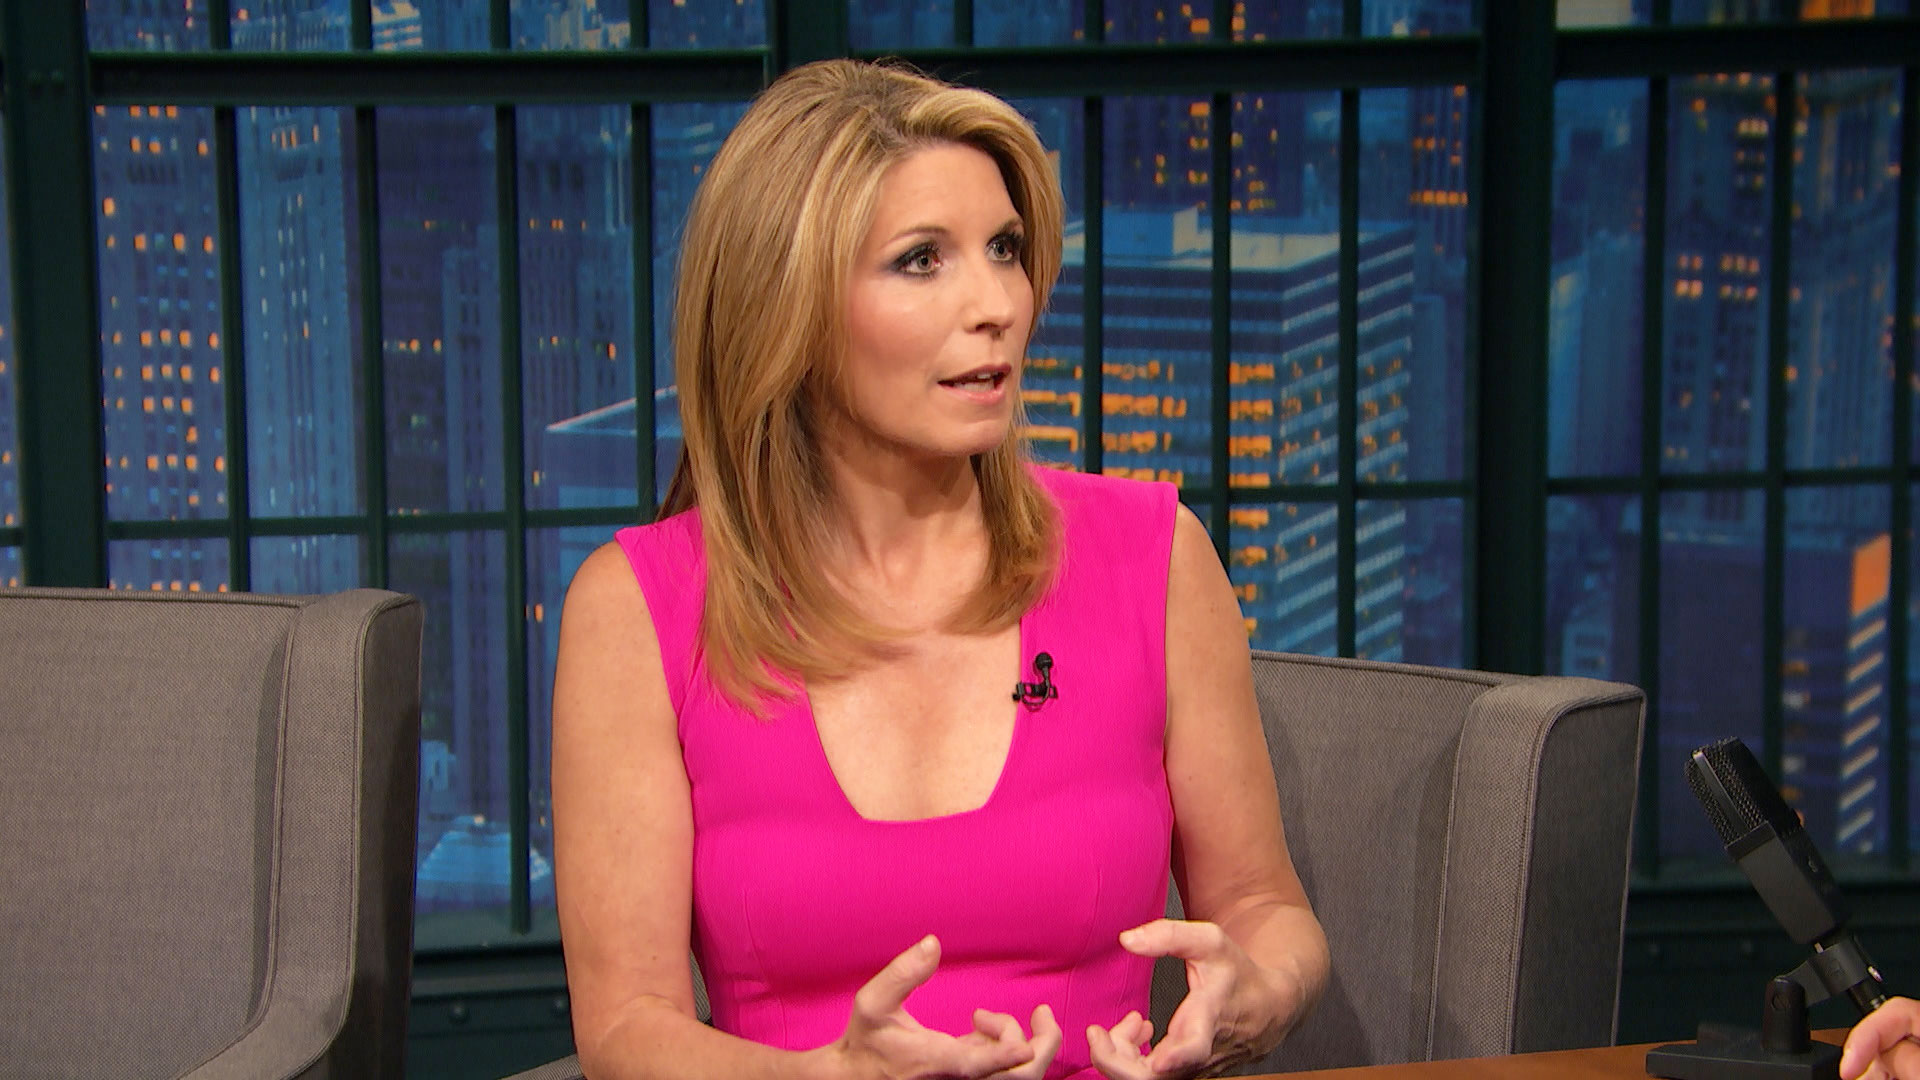 Turns! Nicole wallace nude what that